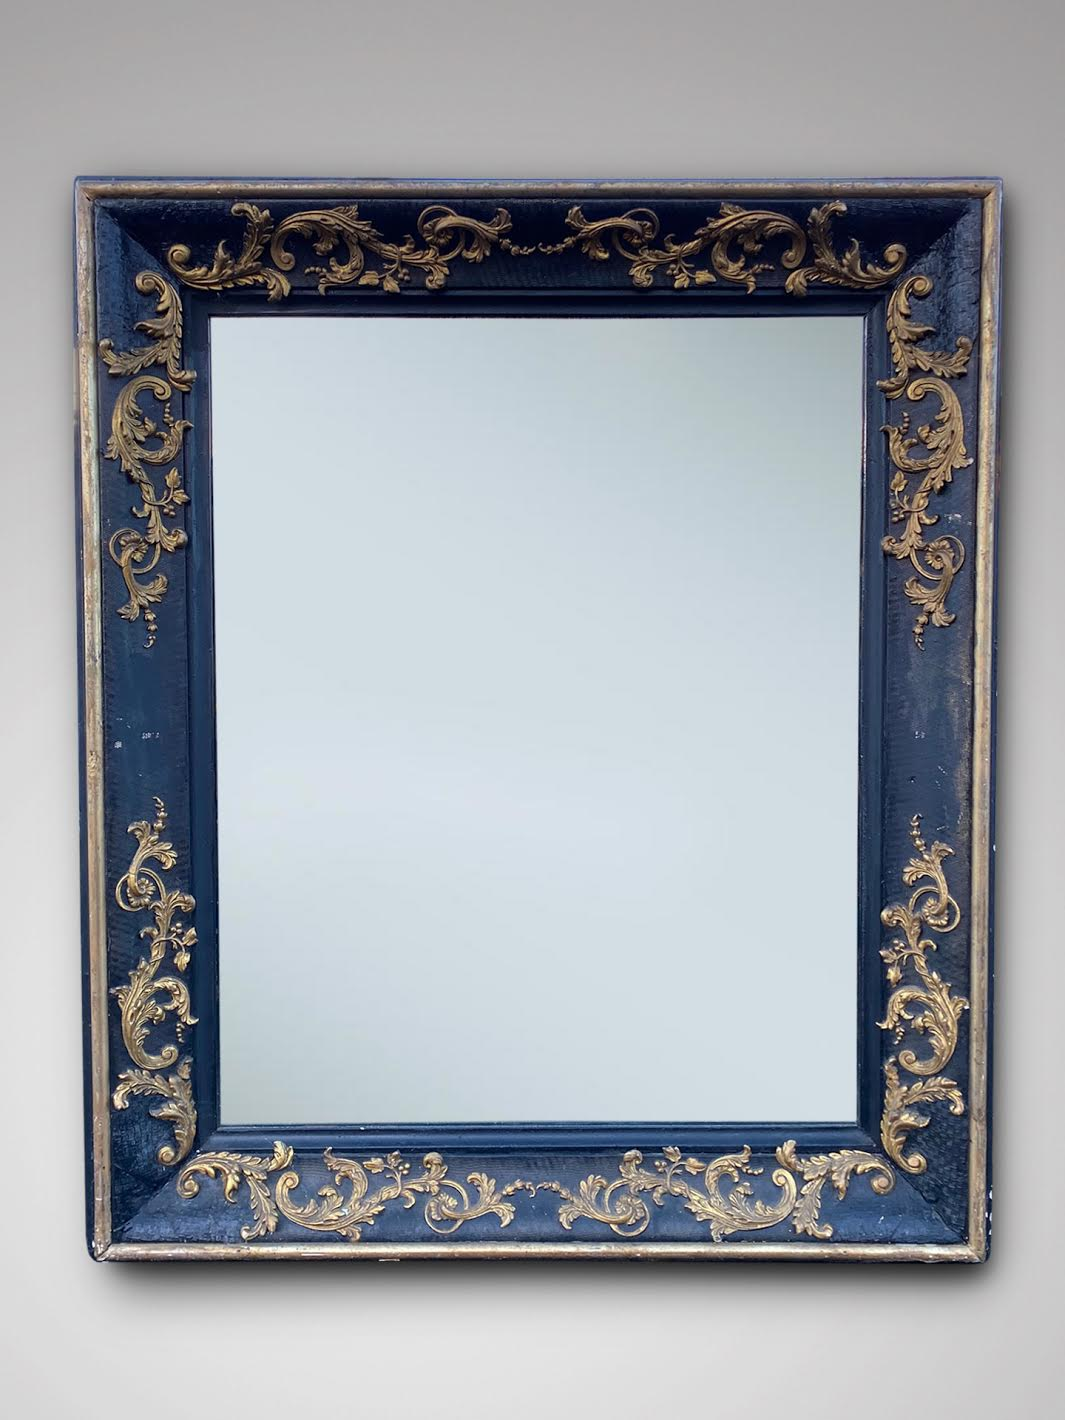 19C LARGE FRENCH EMPIRE WALL MIRROR